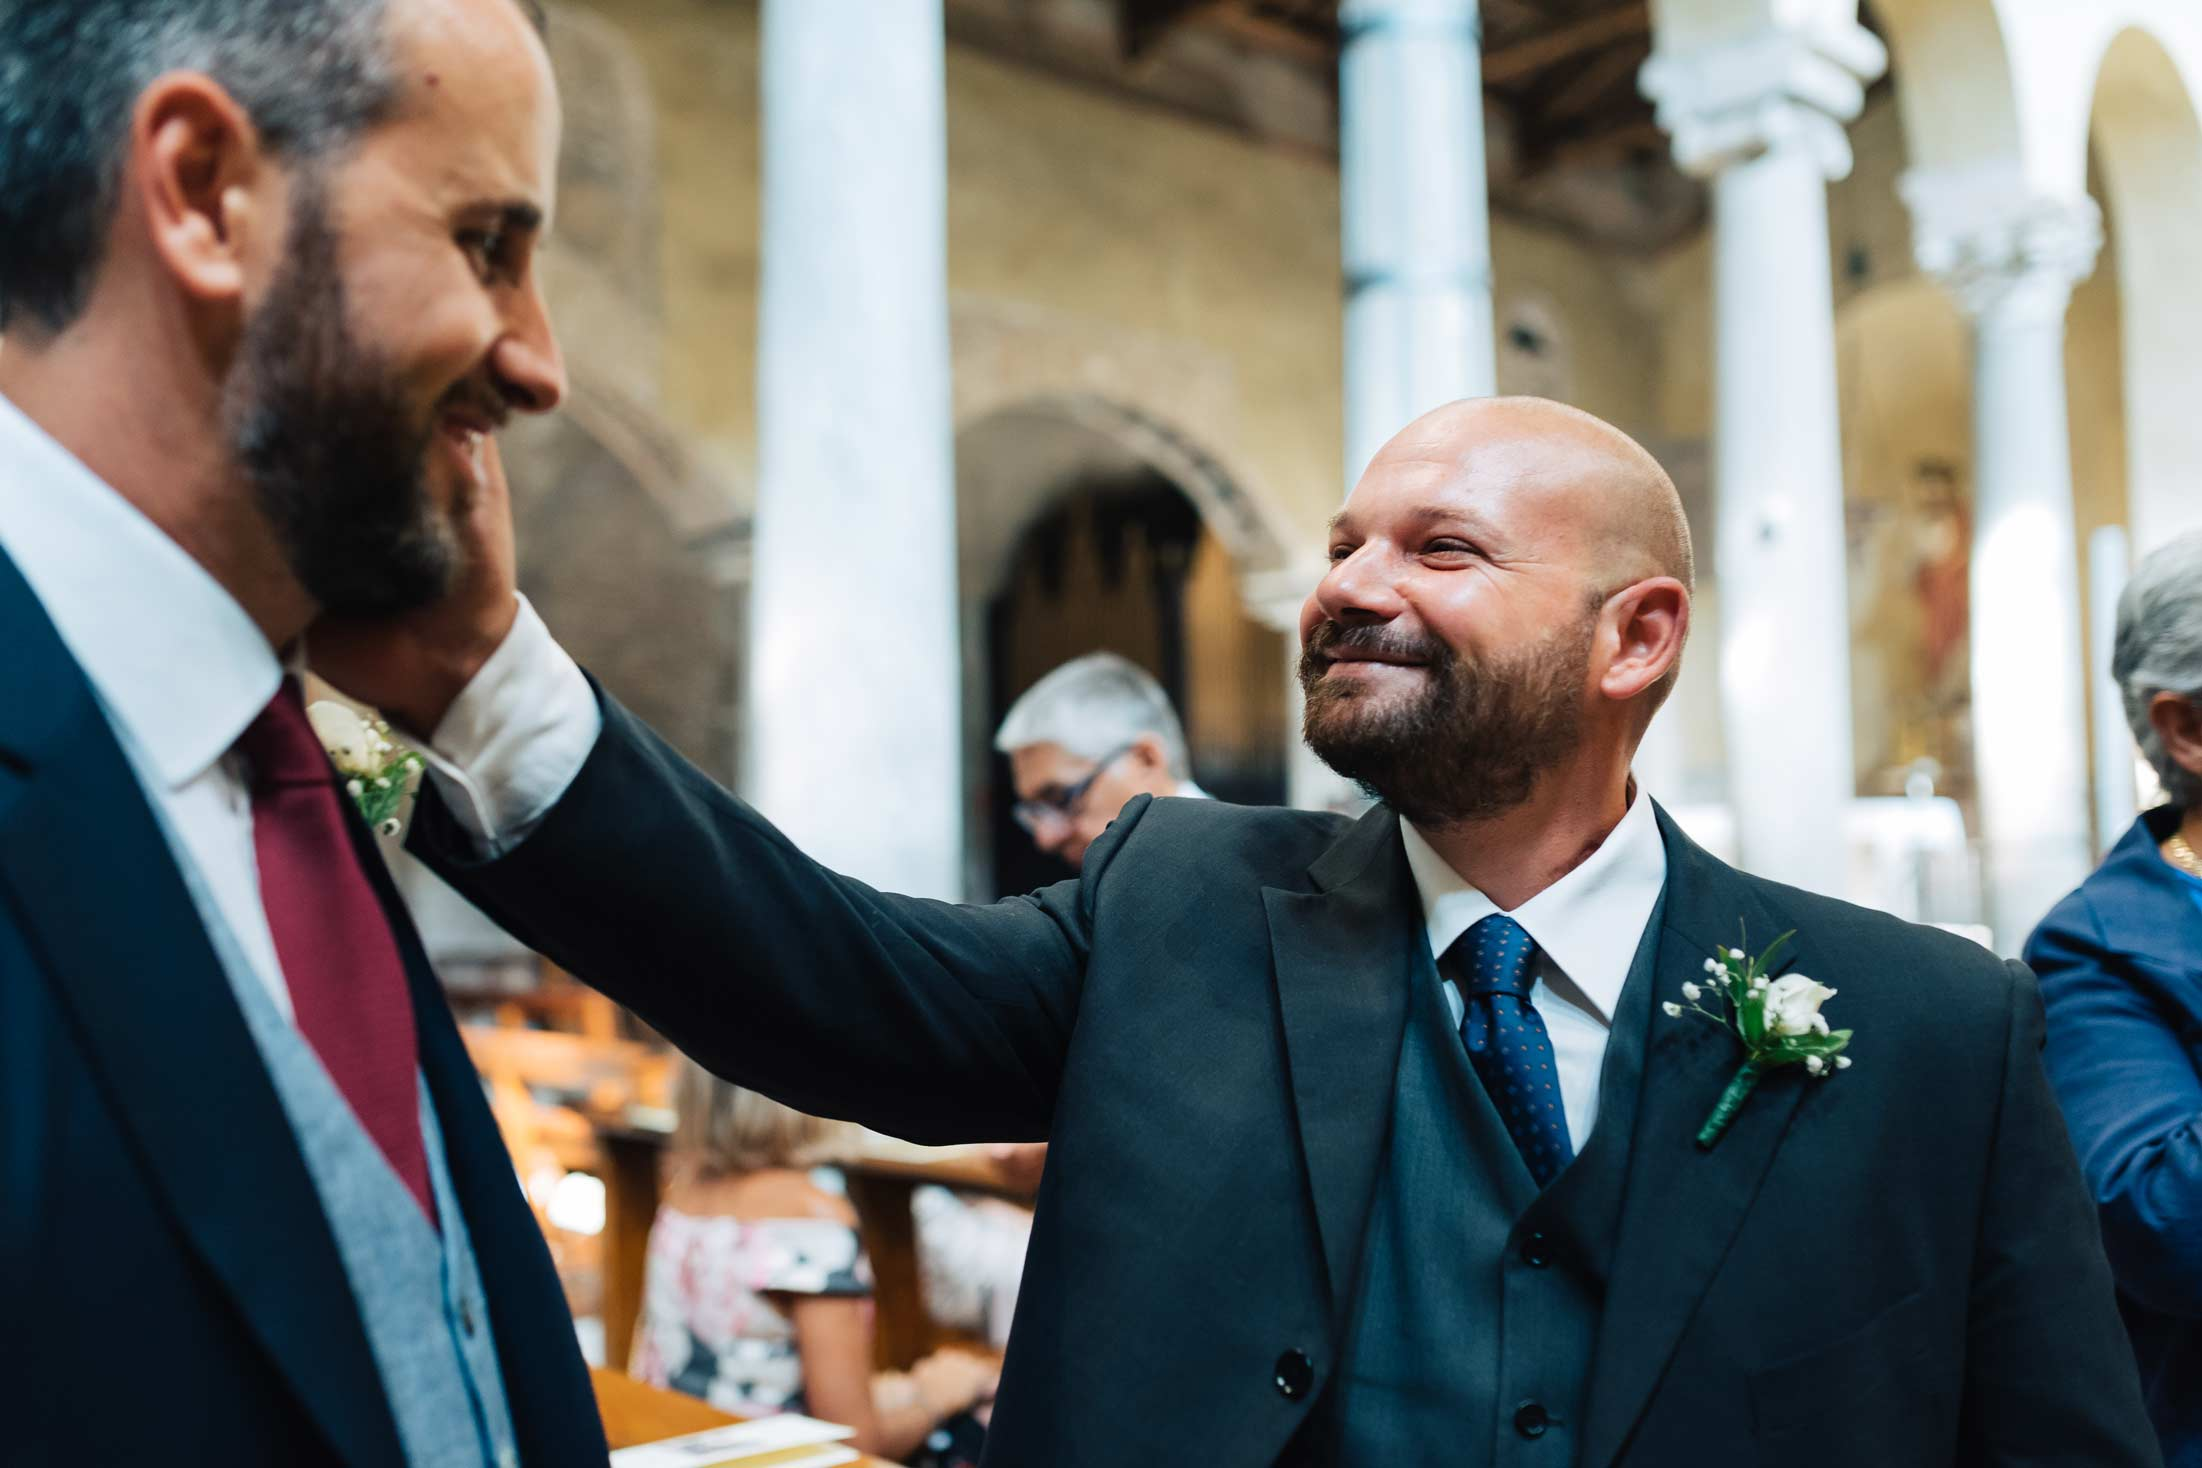 Natural-Wedding-Photography-Wedding-in-Rome-1-Ceremony